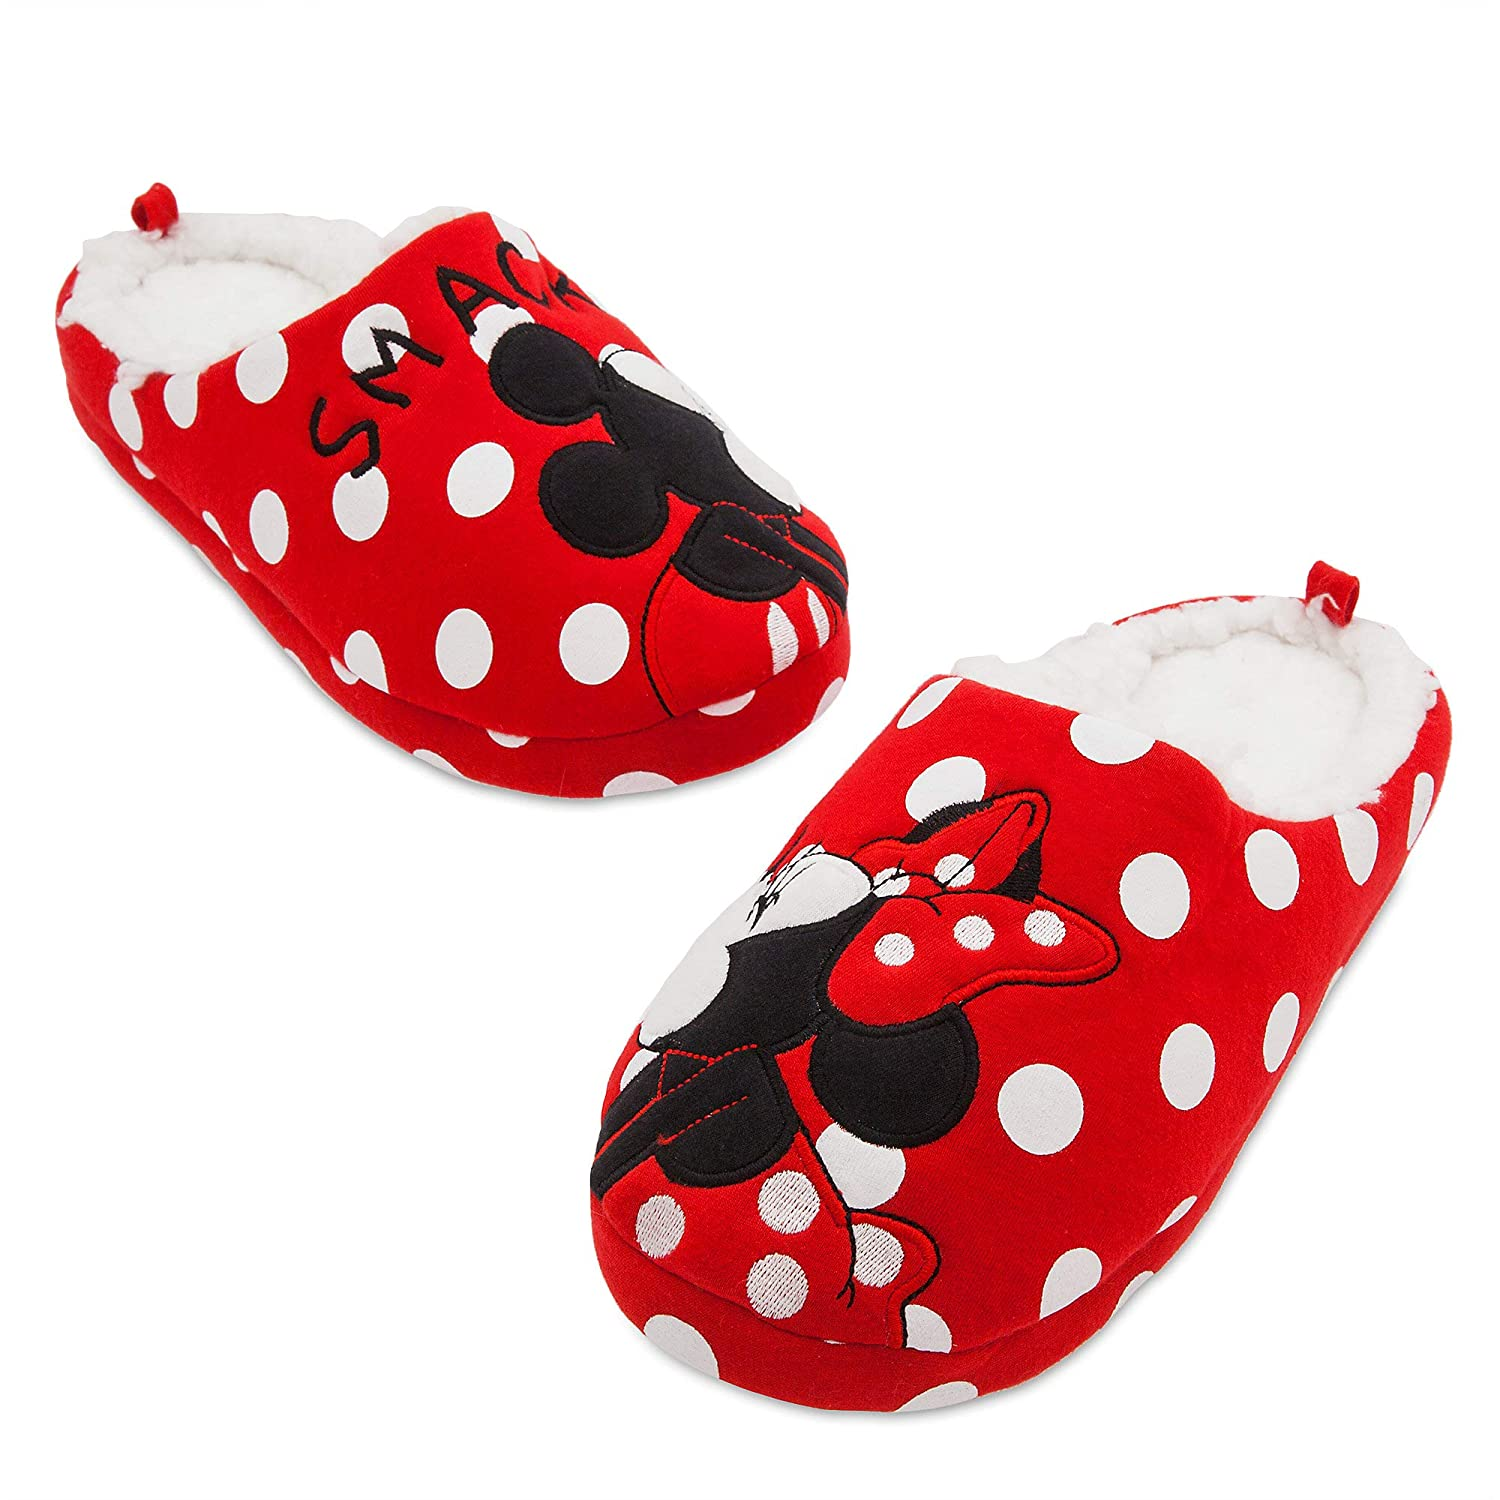 Disney Mickey and Minnie Mouse Slippers for Women Red